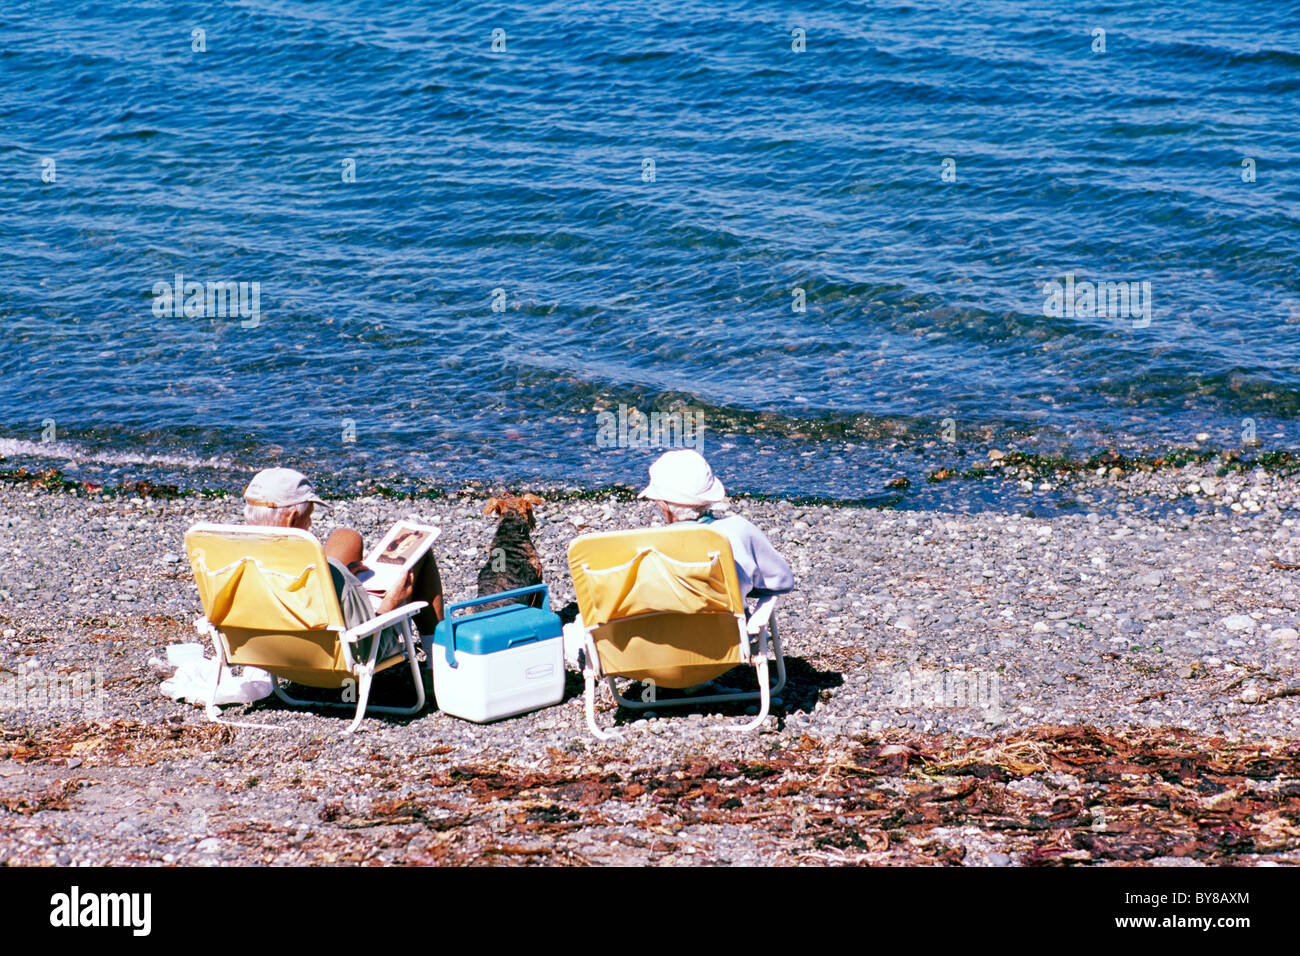 Elderly Couple With Pet Dog Sitting In Chairs And Sunbathing   Qualicum  Beach, BC, Vancouver Island, British Columbia, Canada